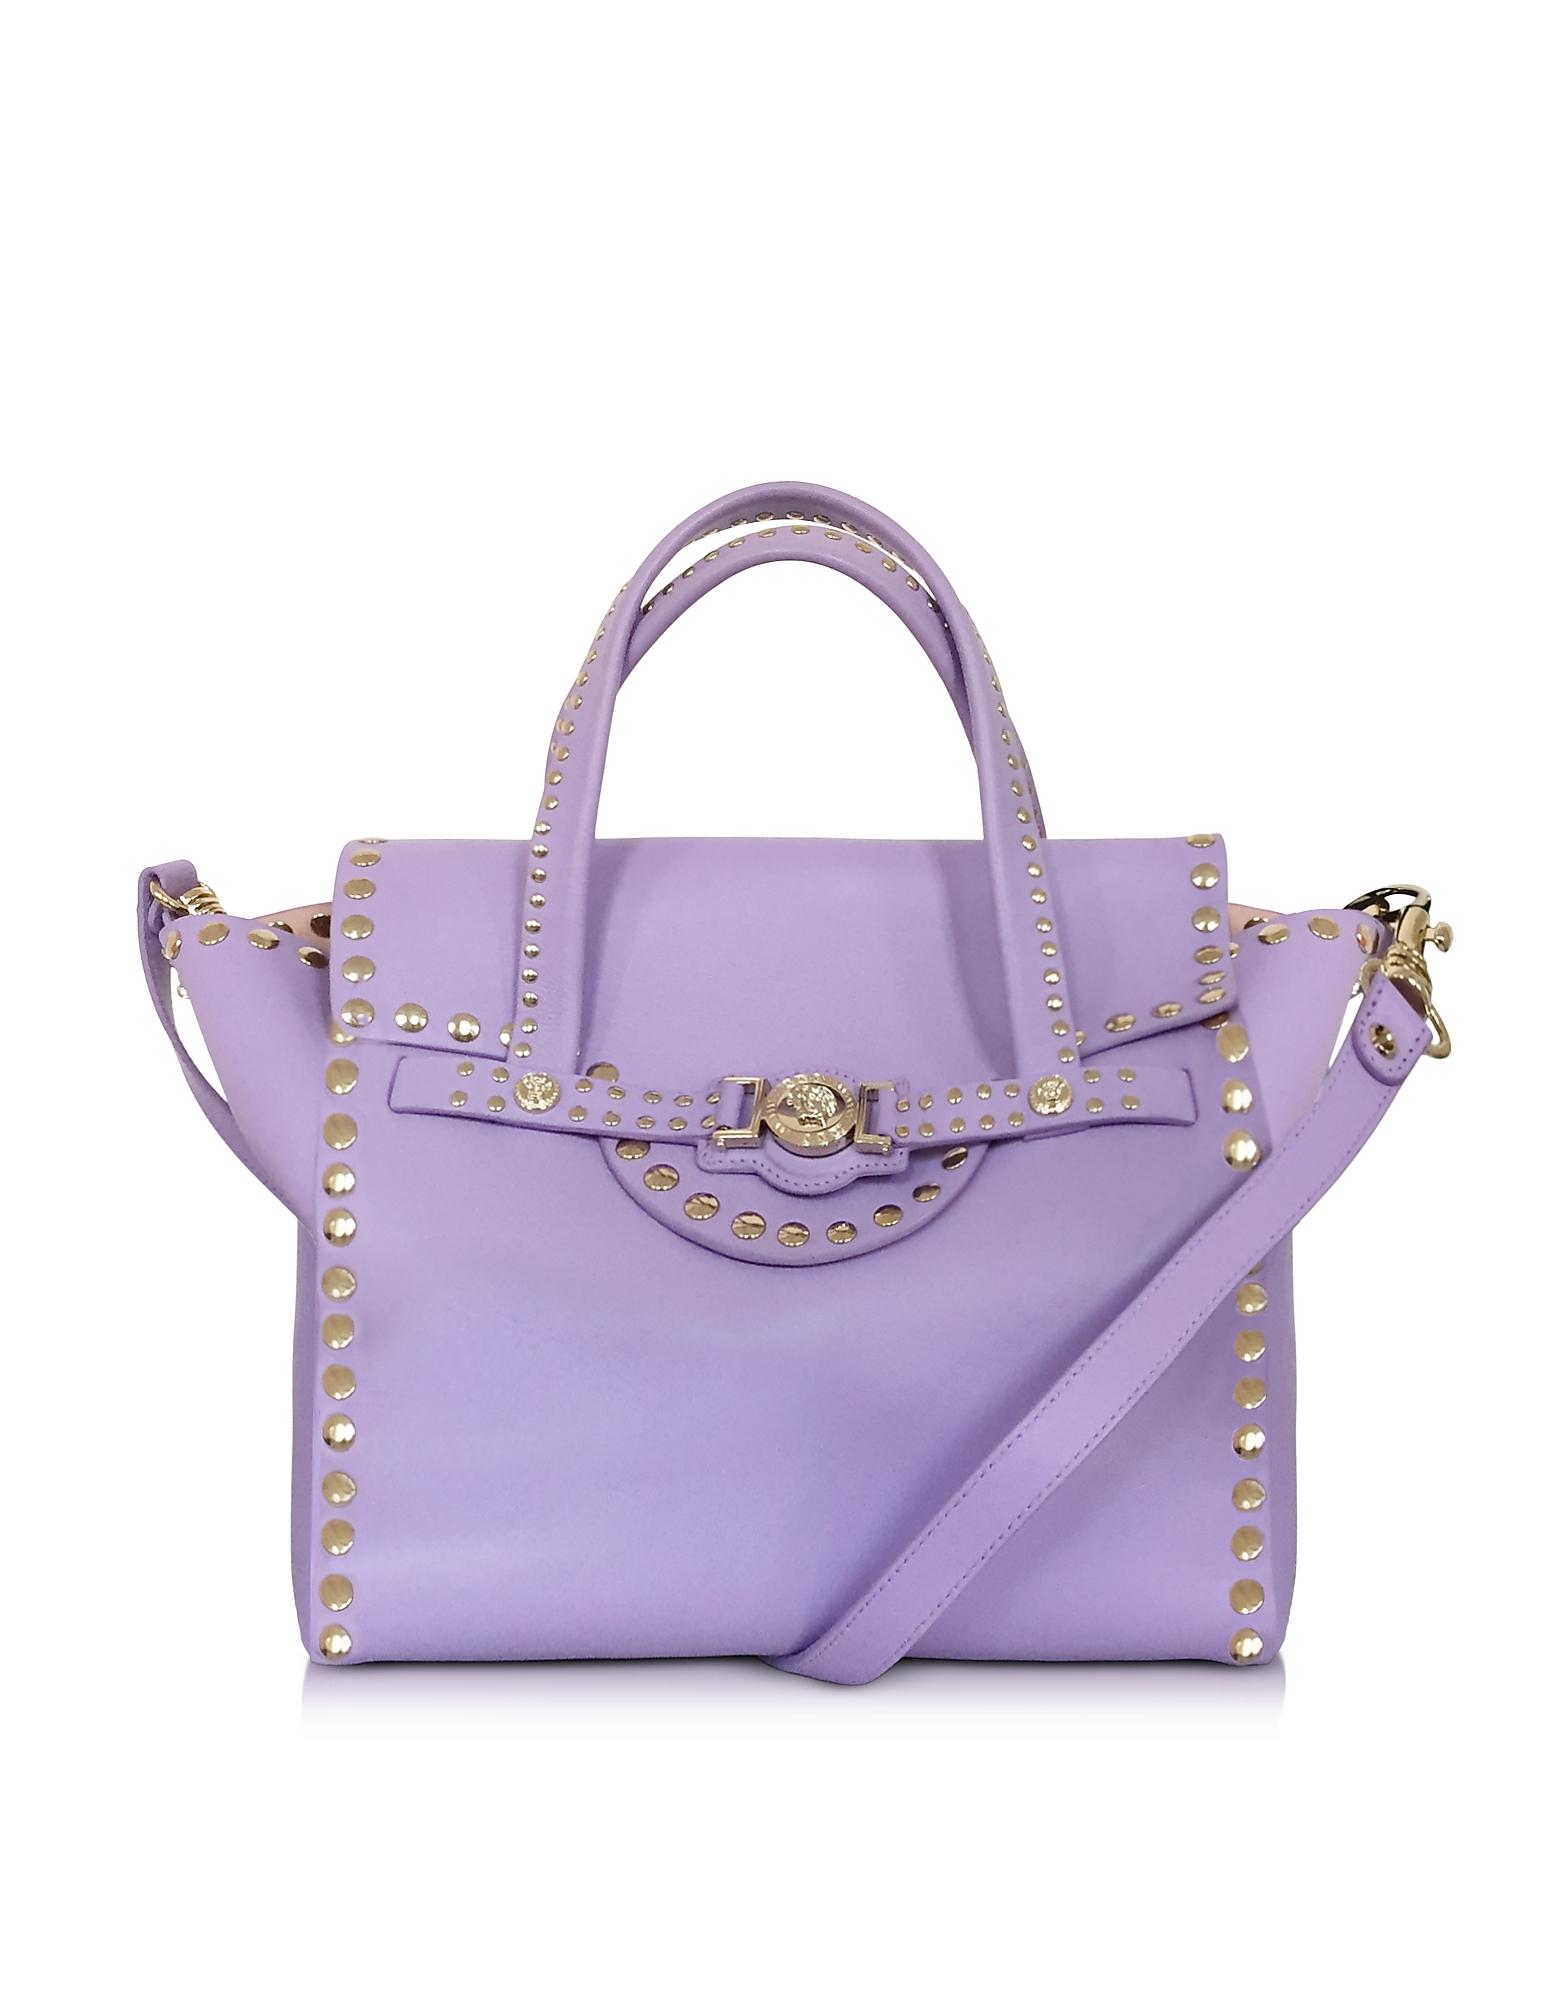 Lyst - Versace Lilac Nappa Leather Satchel Bag W studs in Purple 897bd73caf680